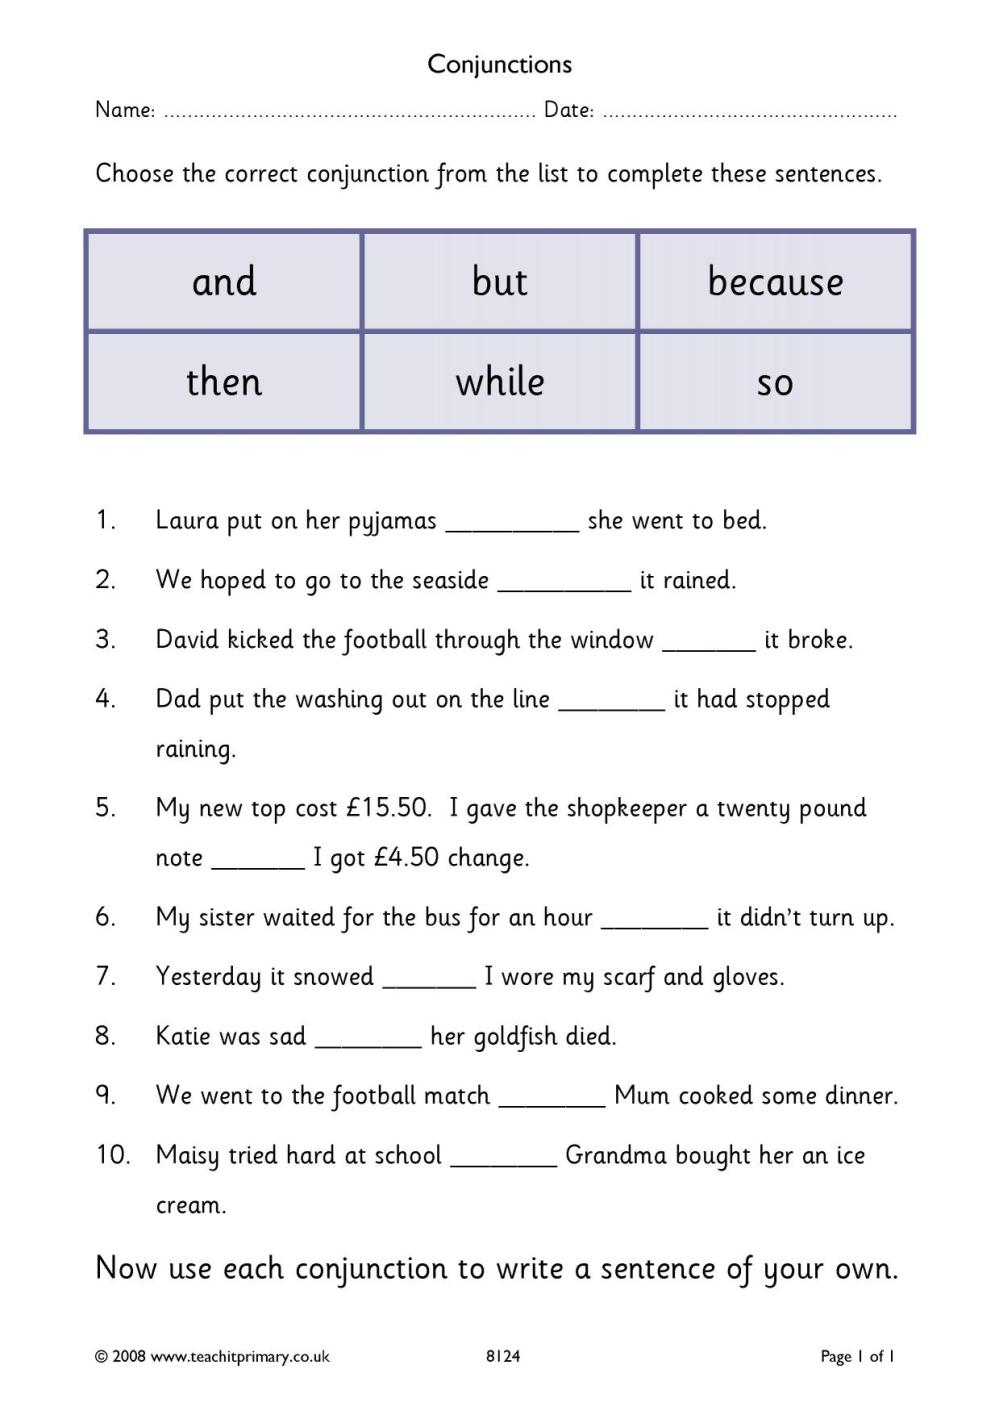 medium resolution of Cordinating Conjunctions Worksheet   Printable Worksheets and Activities  for Teachers